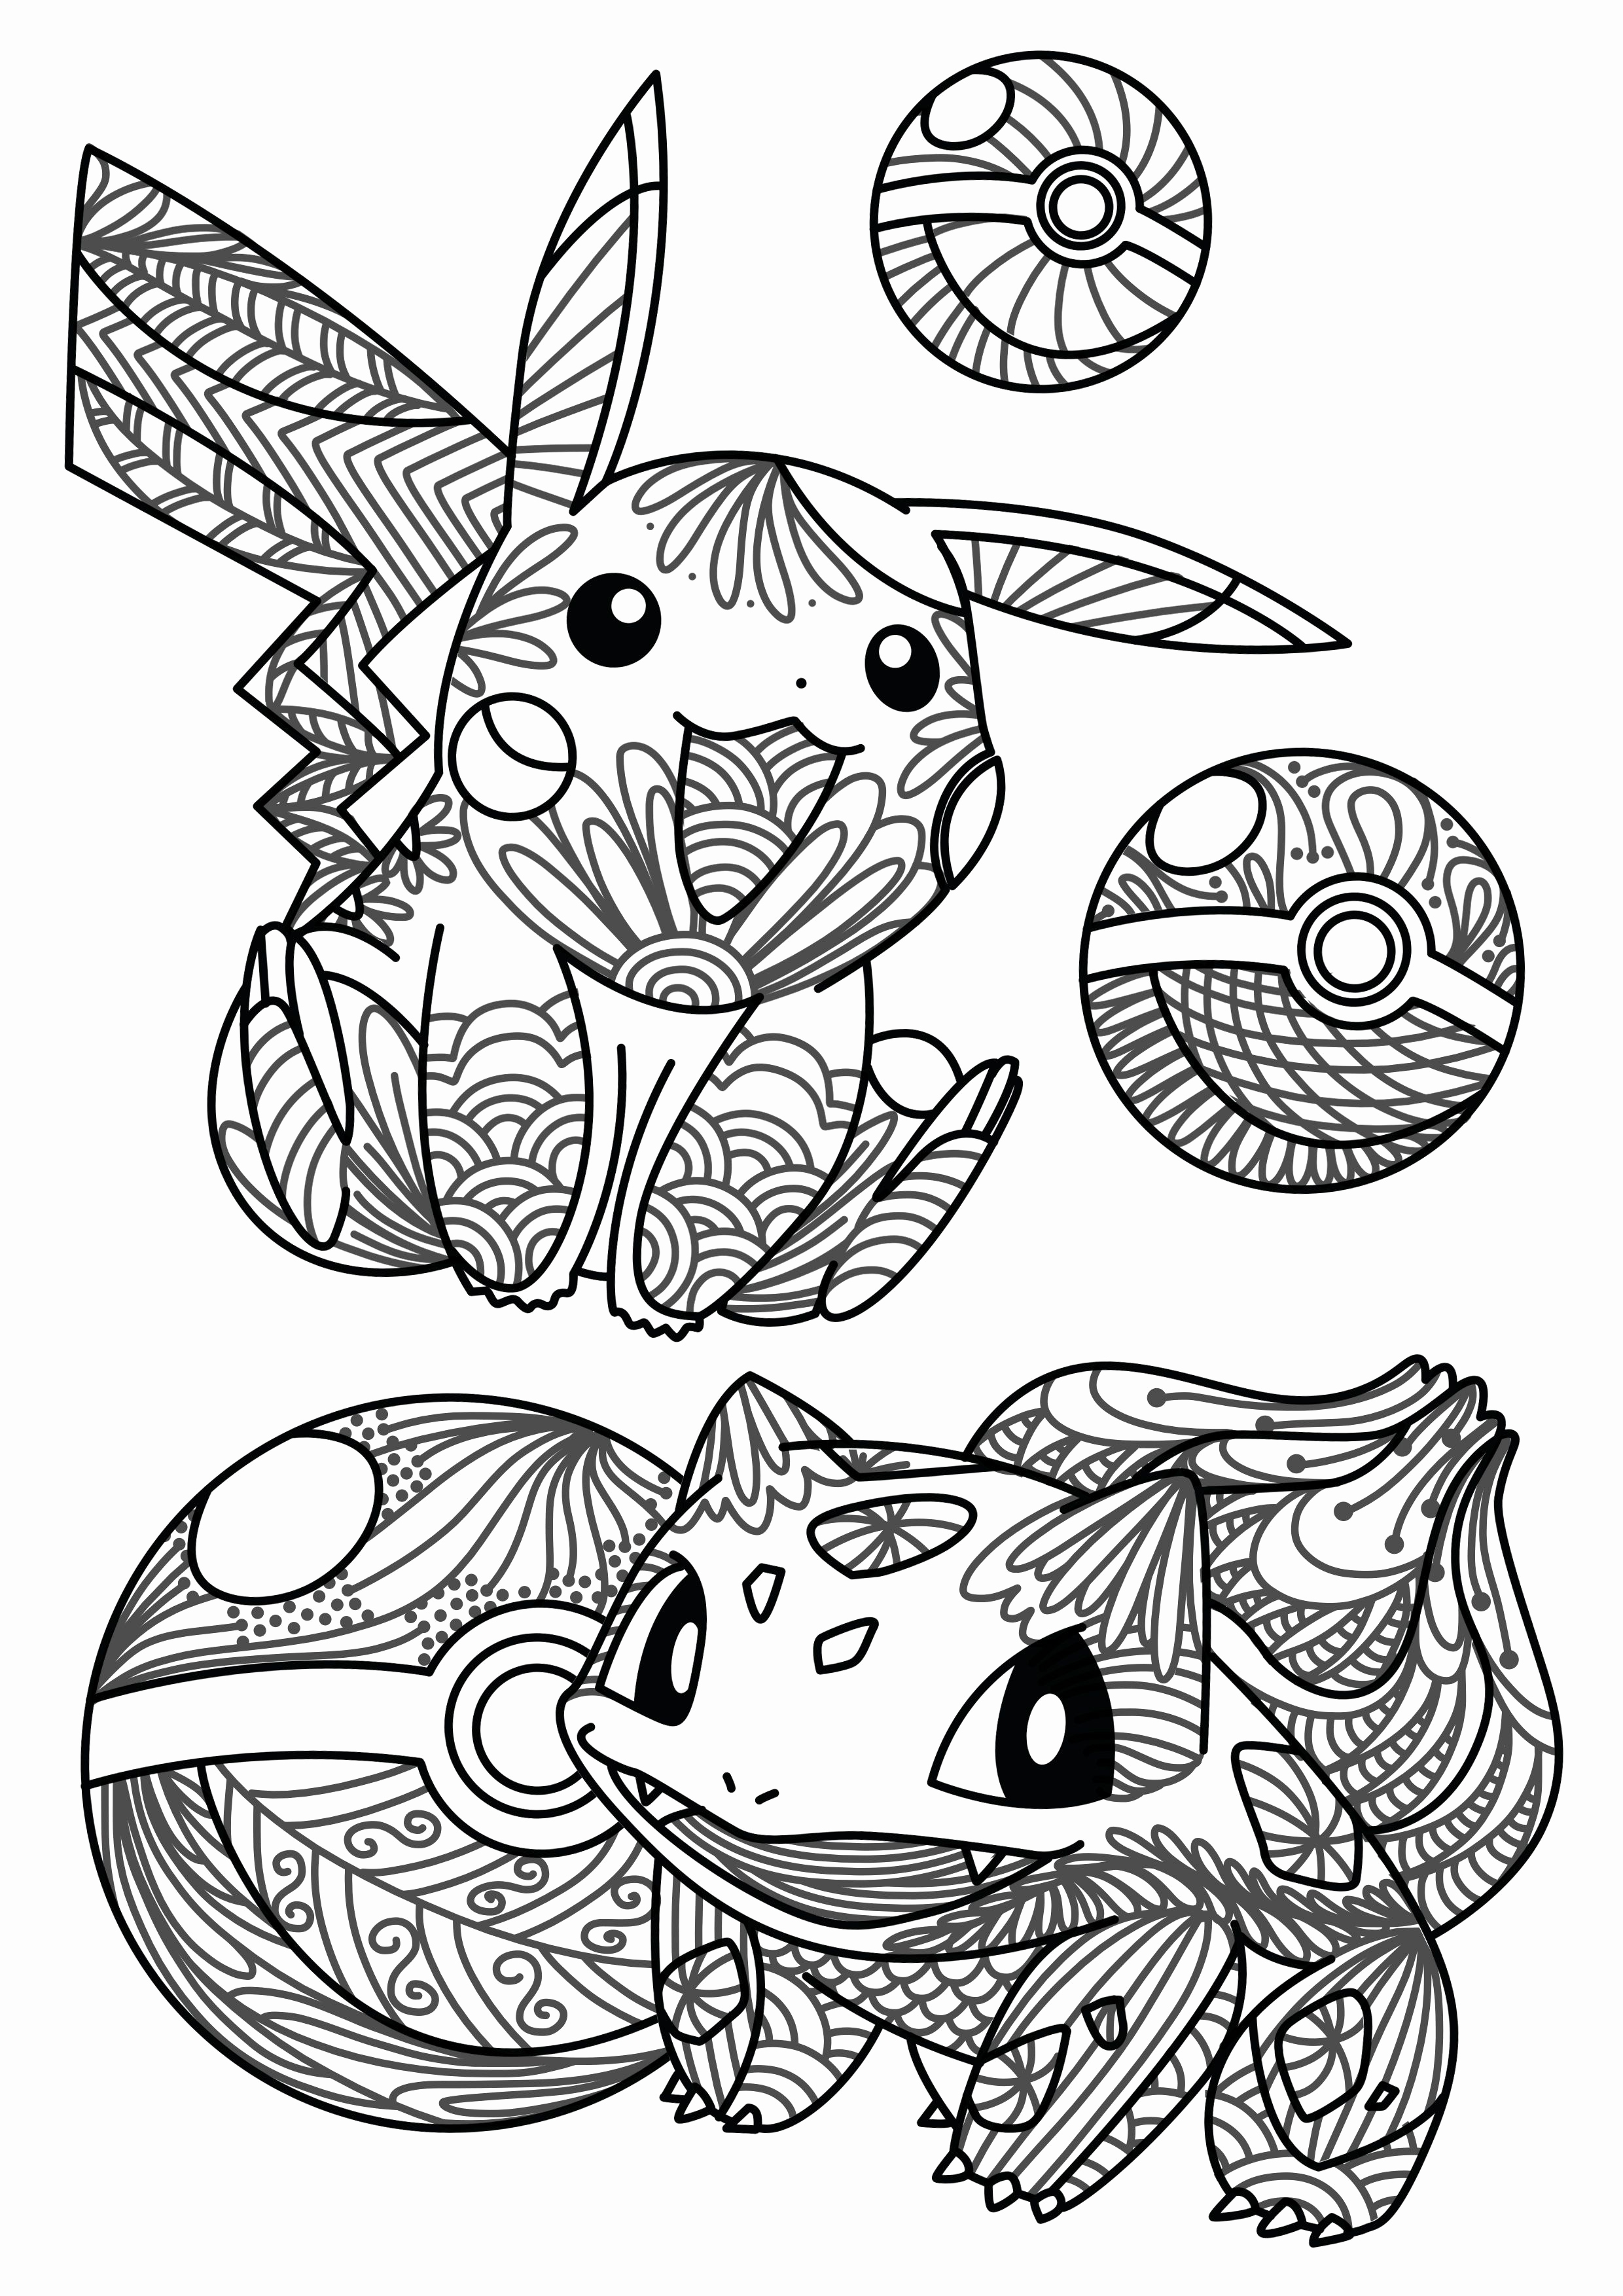 coloring images to print pokemon coloring pages games at getcoloringscom free coloring images print to